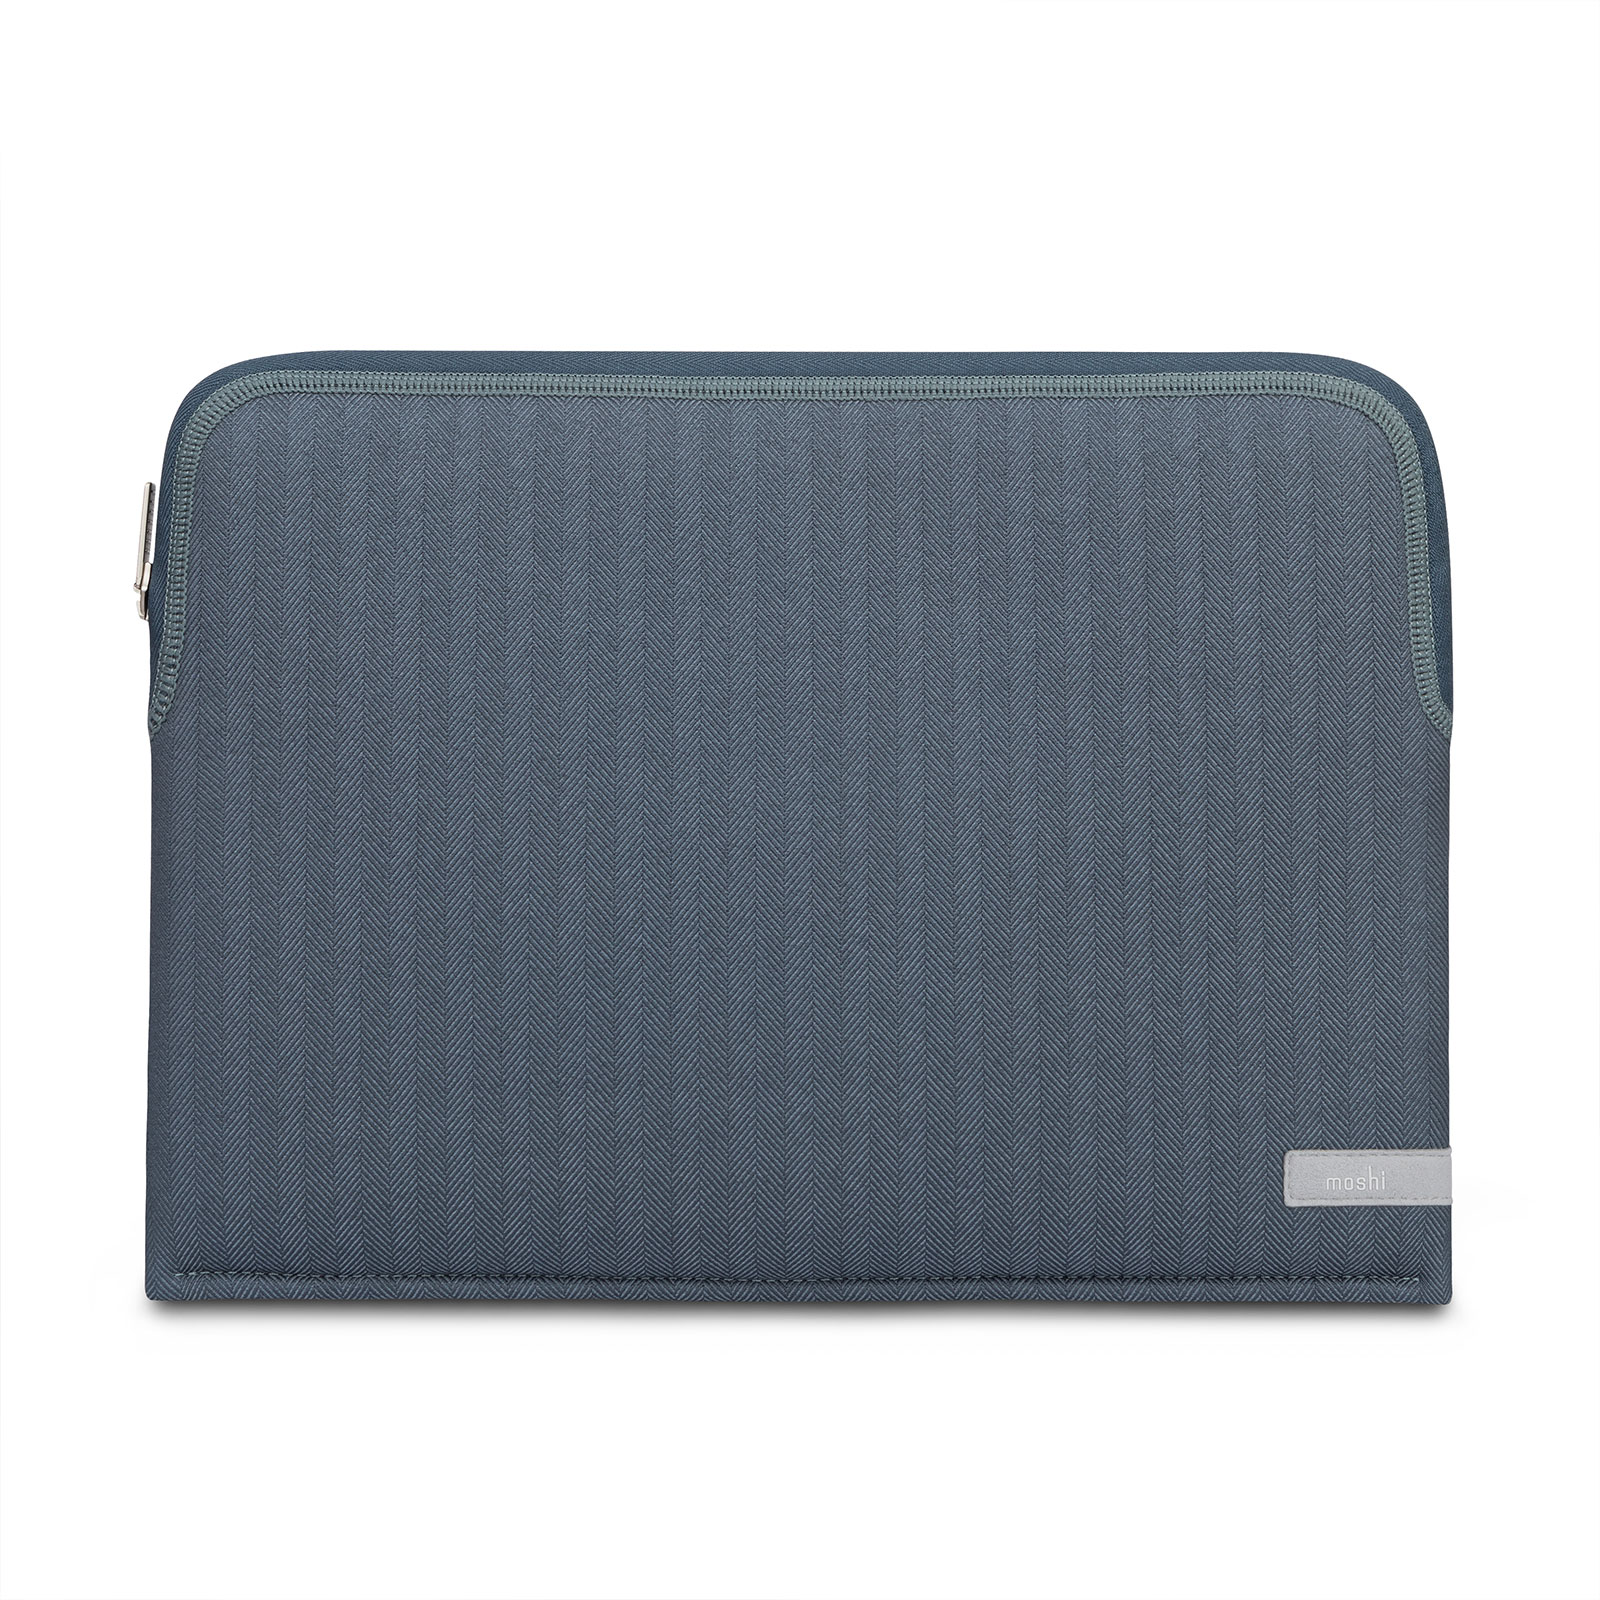 "Pluma 13"" Laptop Sleeve for MacBook-image"